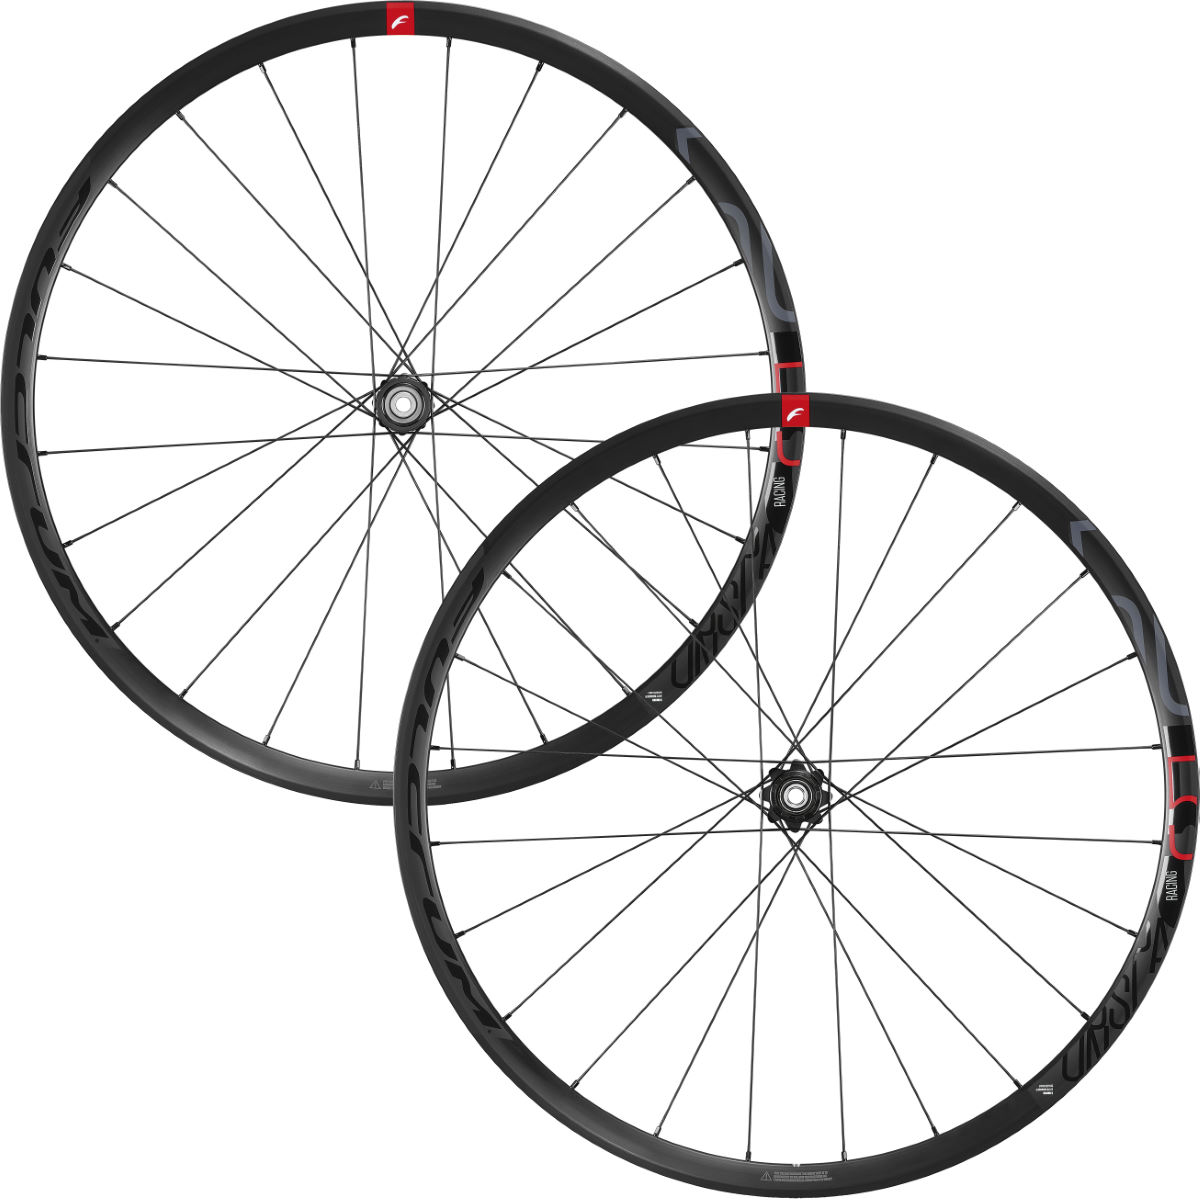 Fulcrum Racing 5 DB Disc Wheelset Wheel Sets